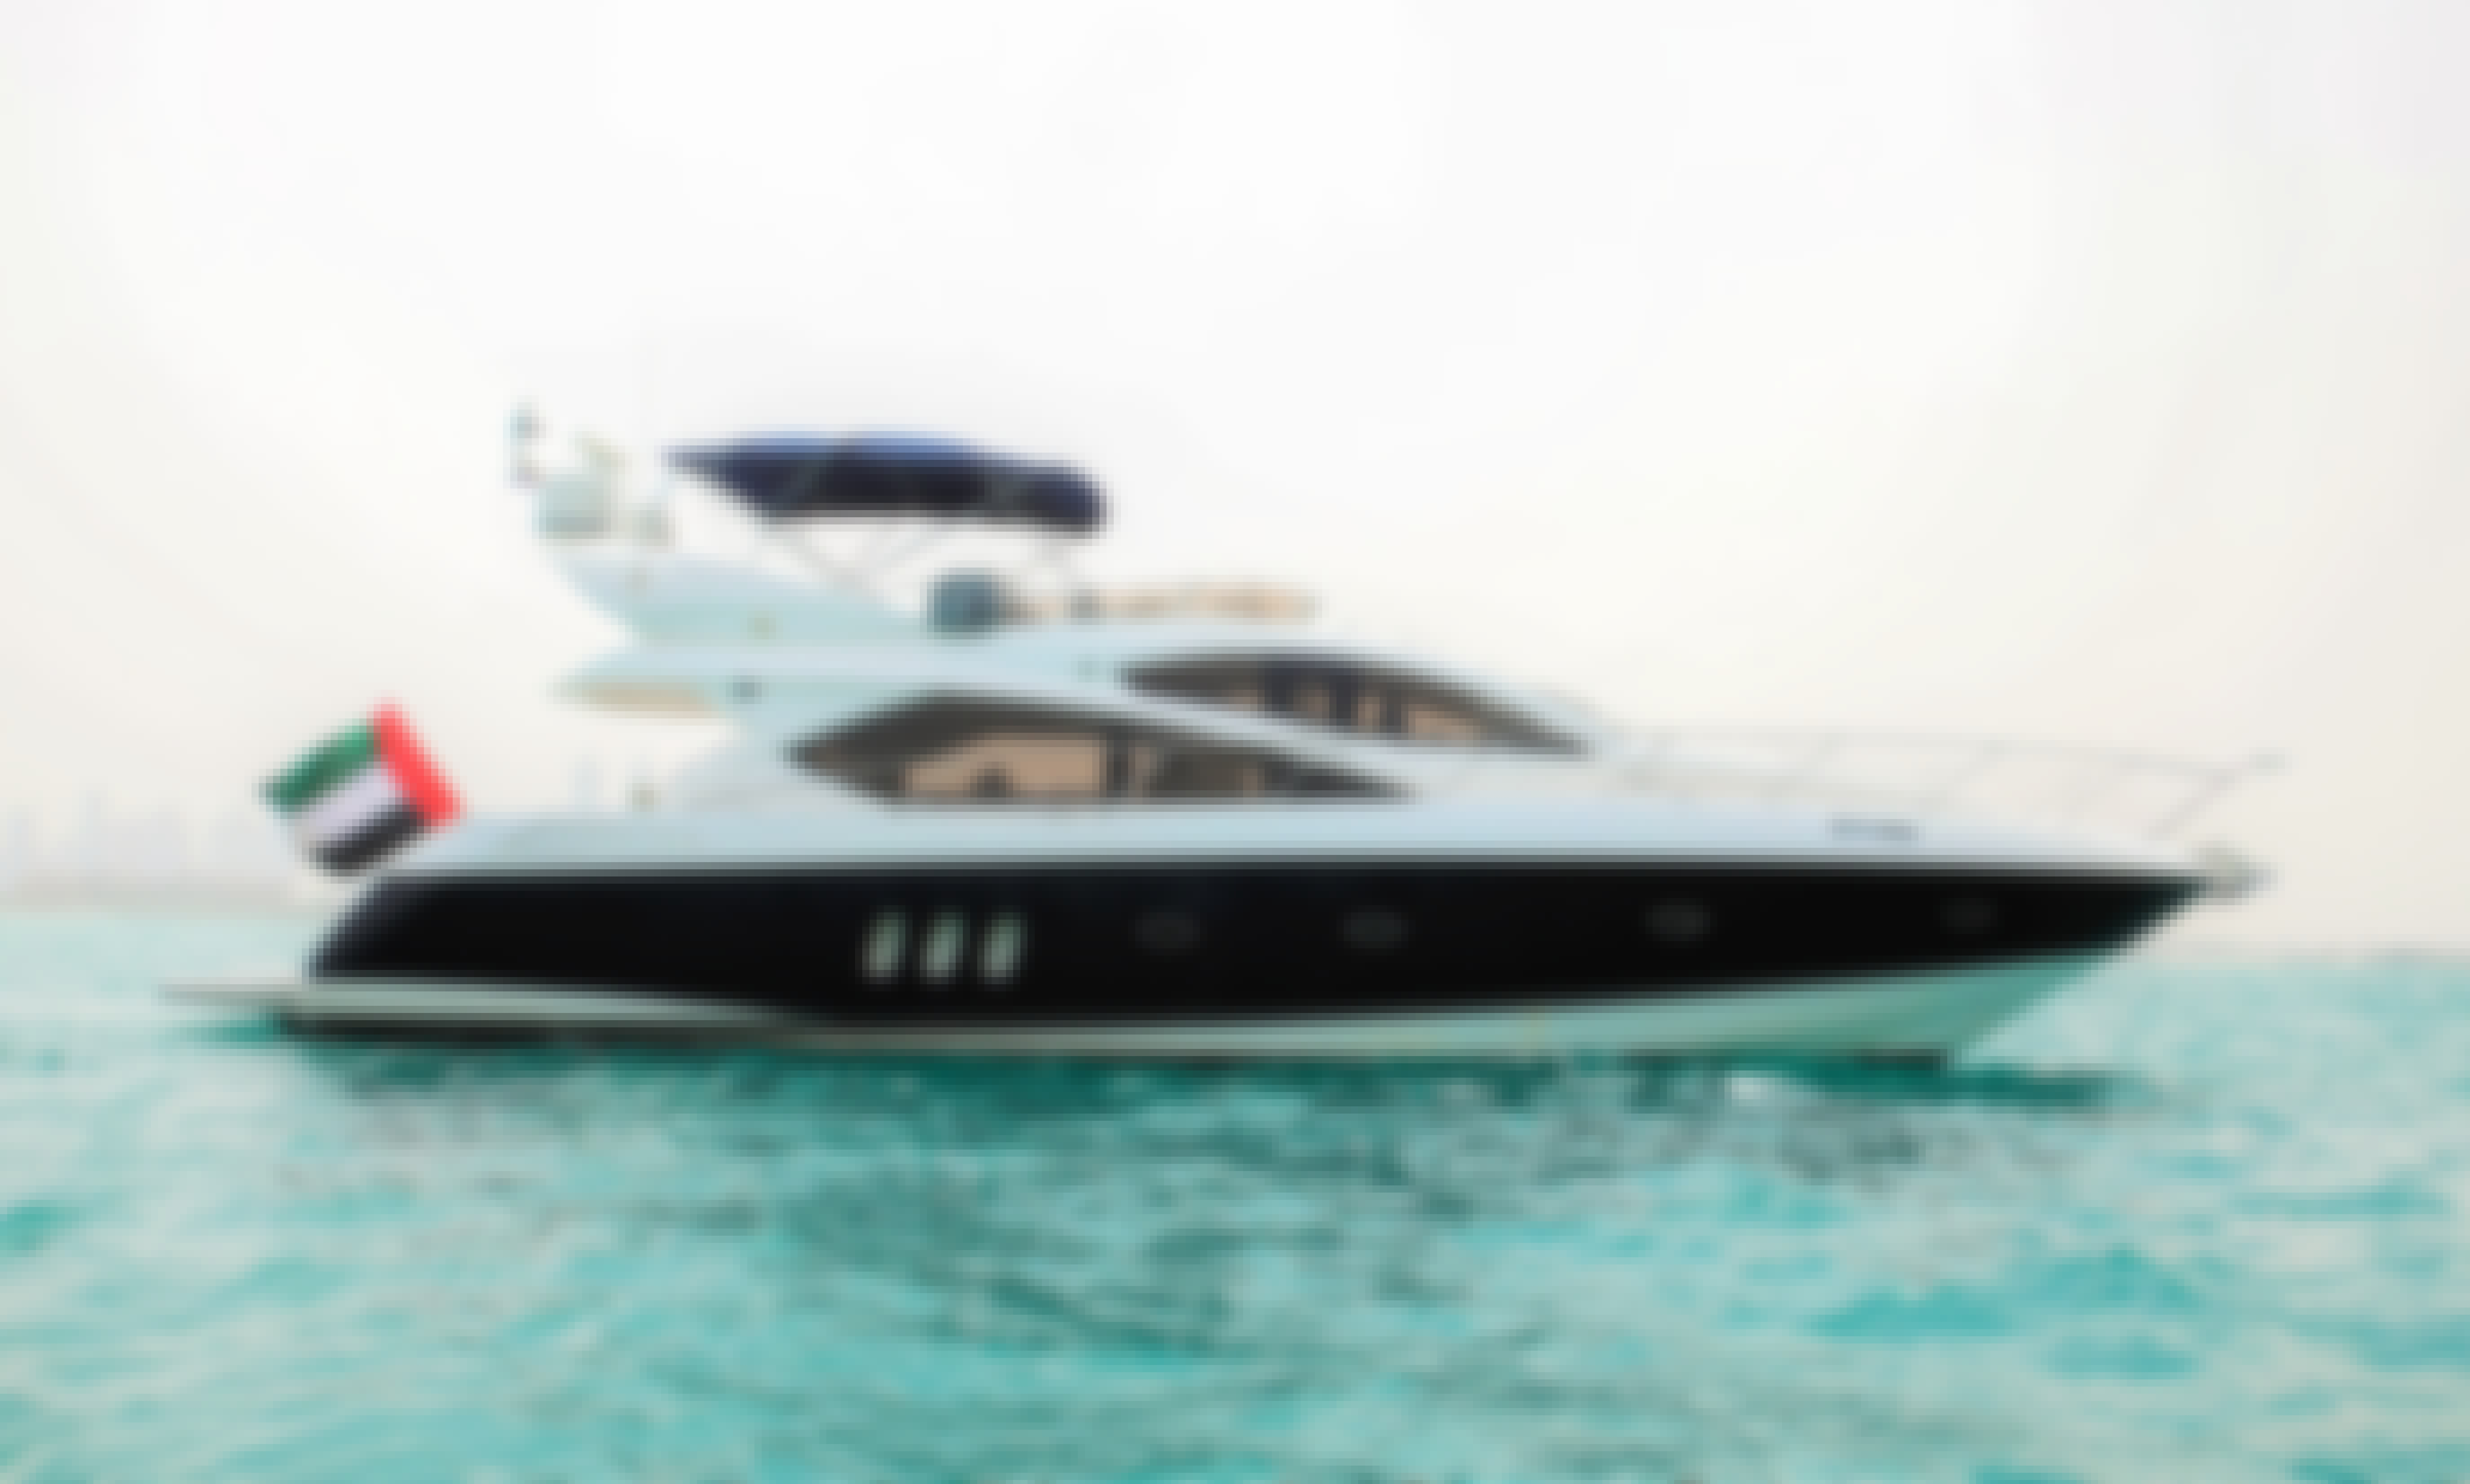 Rent Yacht in 64' Sunseeker Motor Yacht for 15 pax from Luxury Collection in Dubai